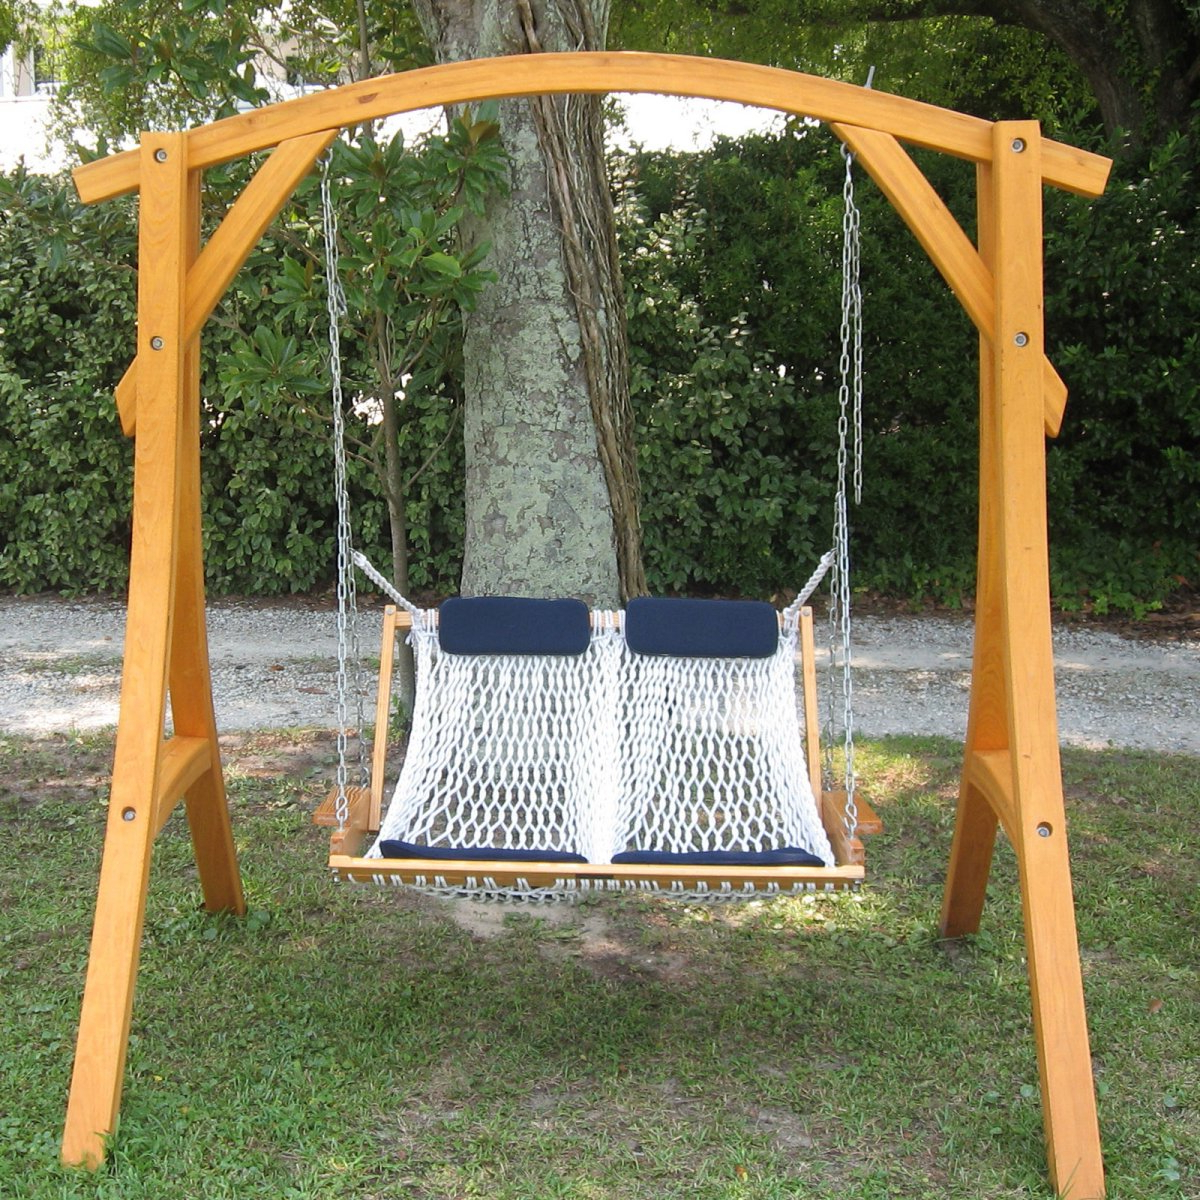 Trendy Outdoor Canopy Hammock Porch Swings With Stand Inside Porch Hammock Swing Ideas (Gallery 29 of 30)